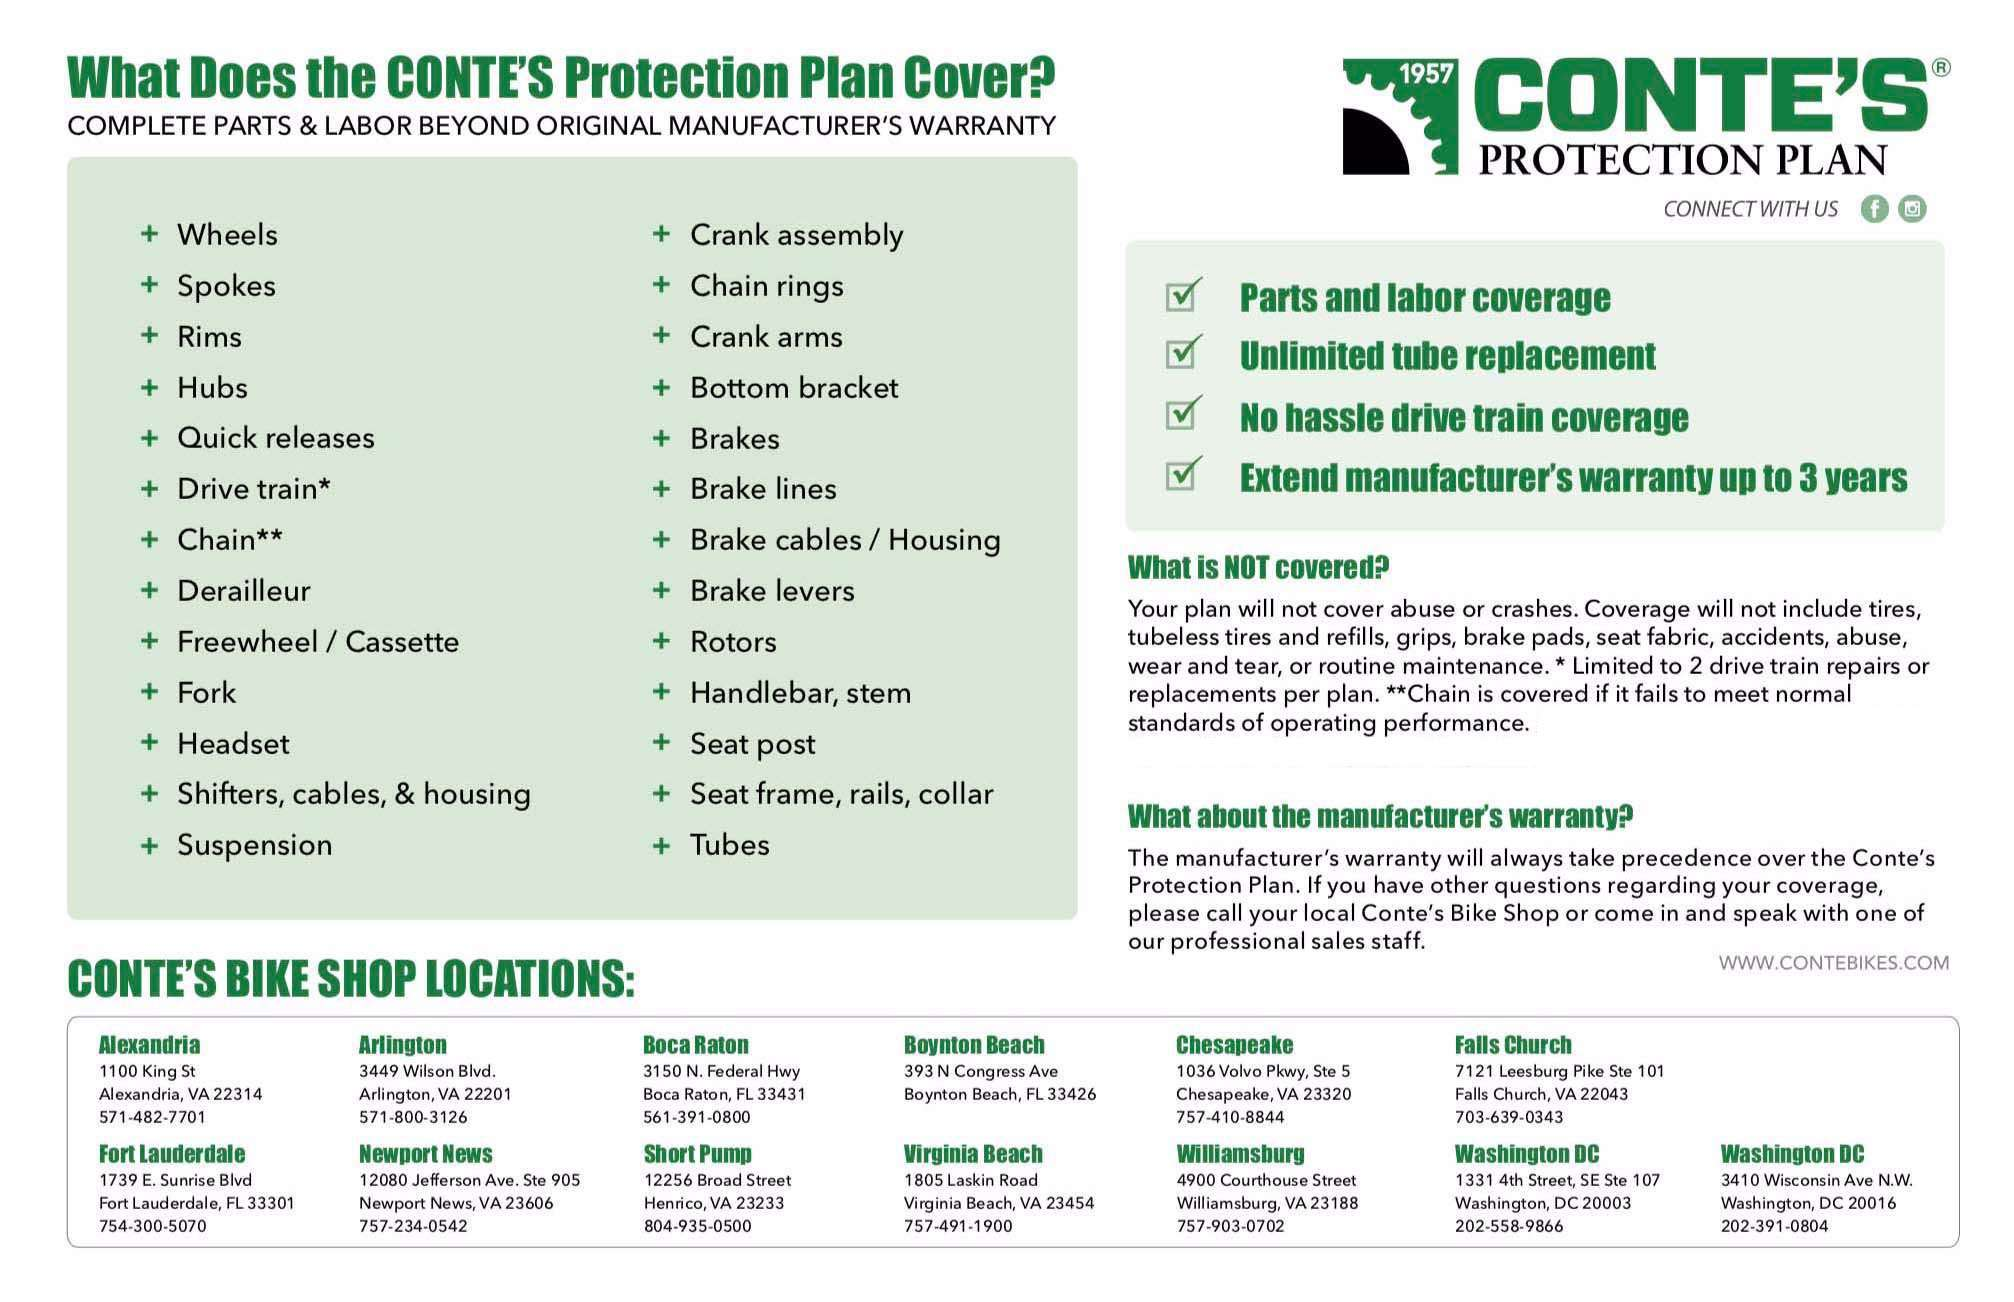 Conte's Protection Plan Information